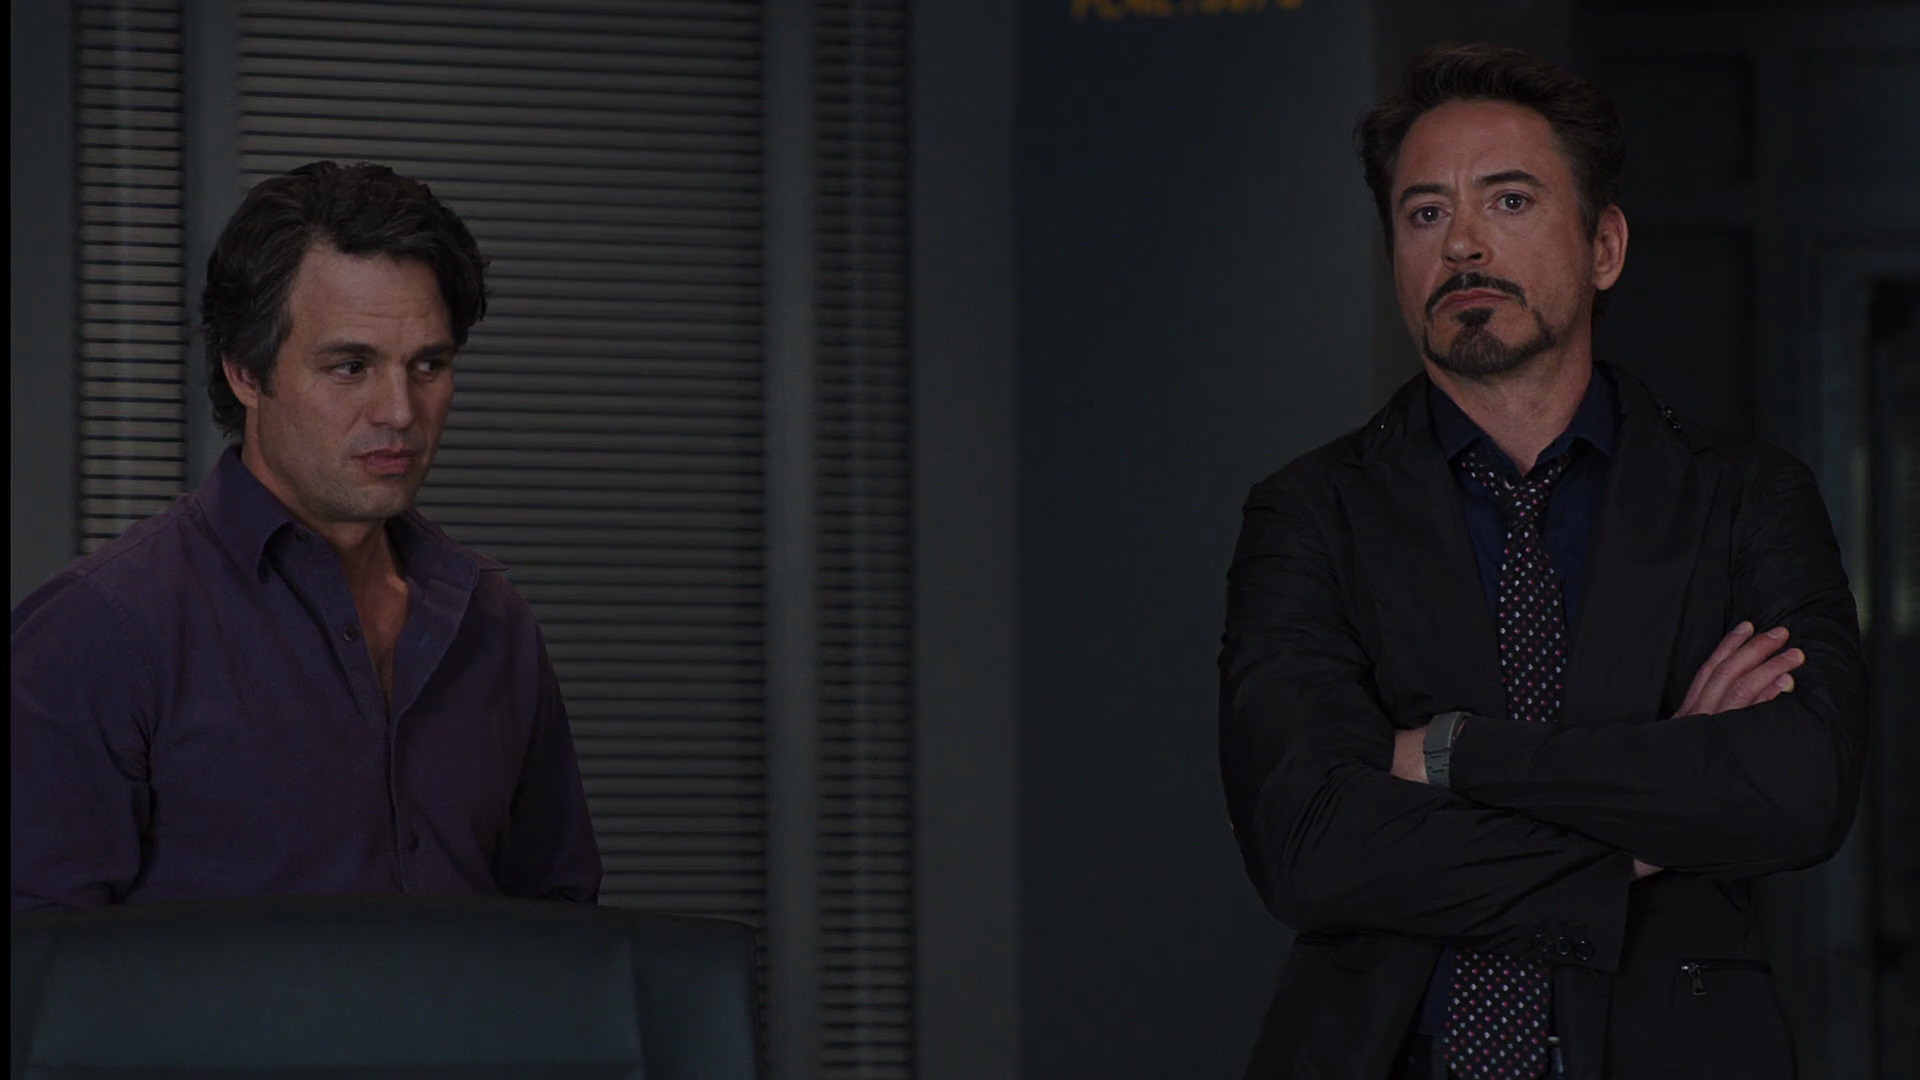 http://www.caps.media/201/2-avengers/full/avengers-movie-screencaps.com-6568.jpg